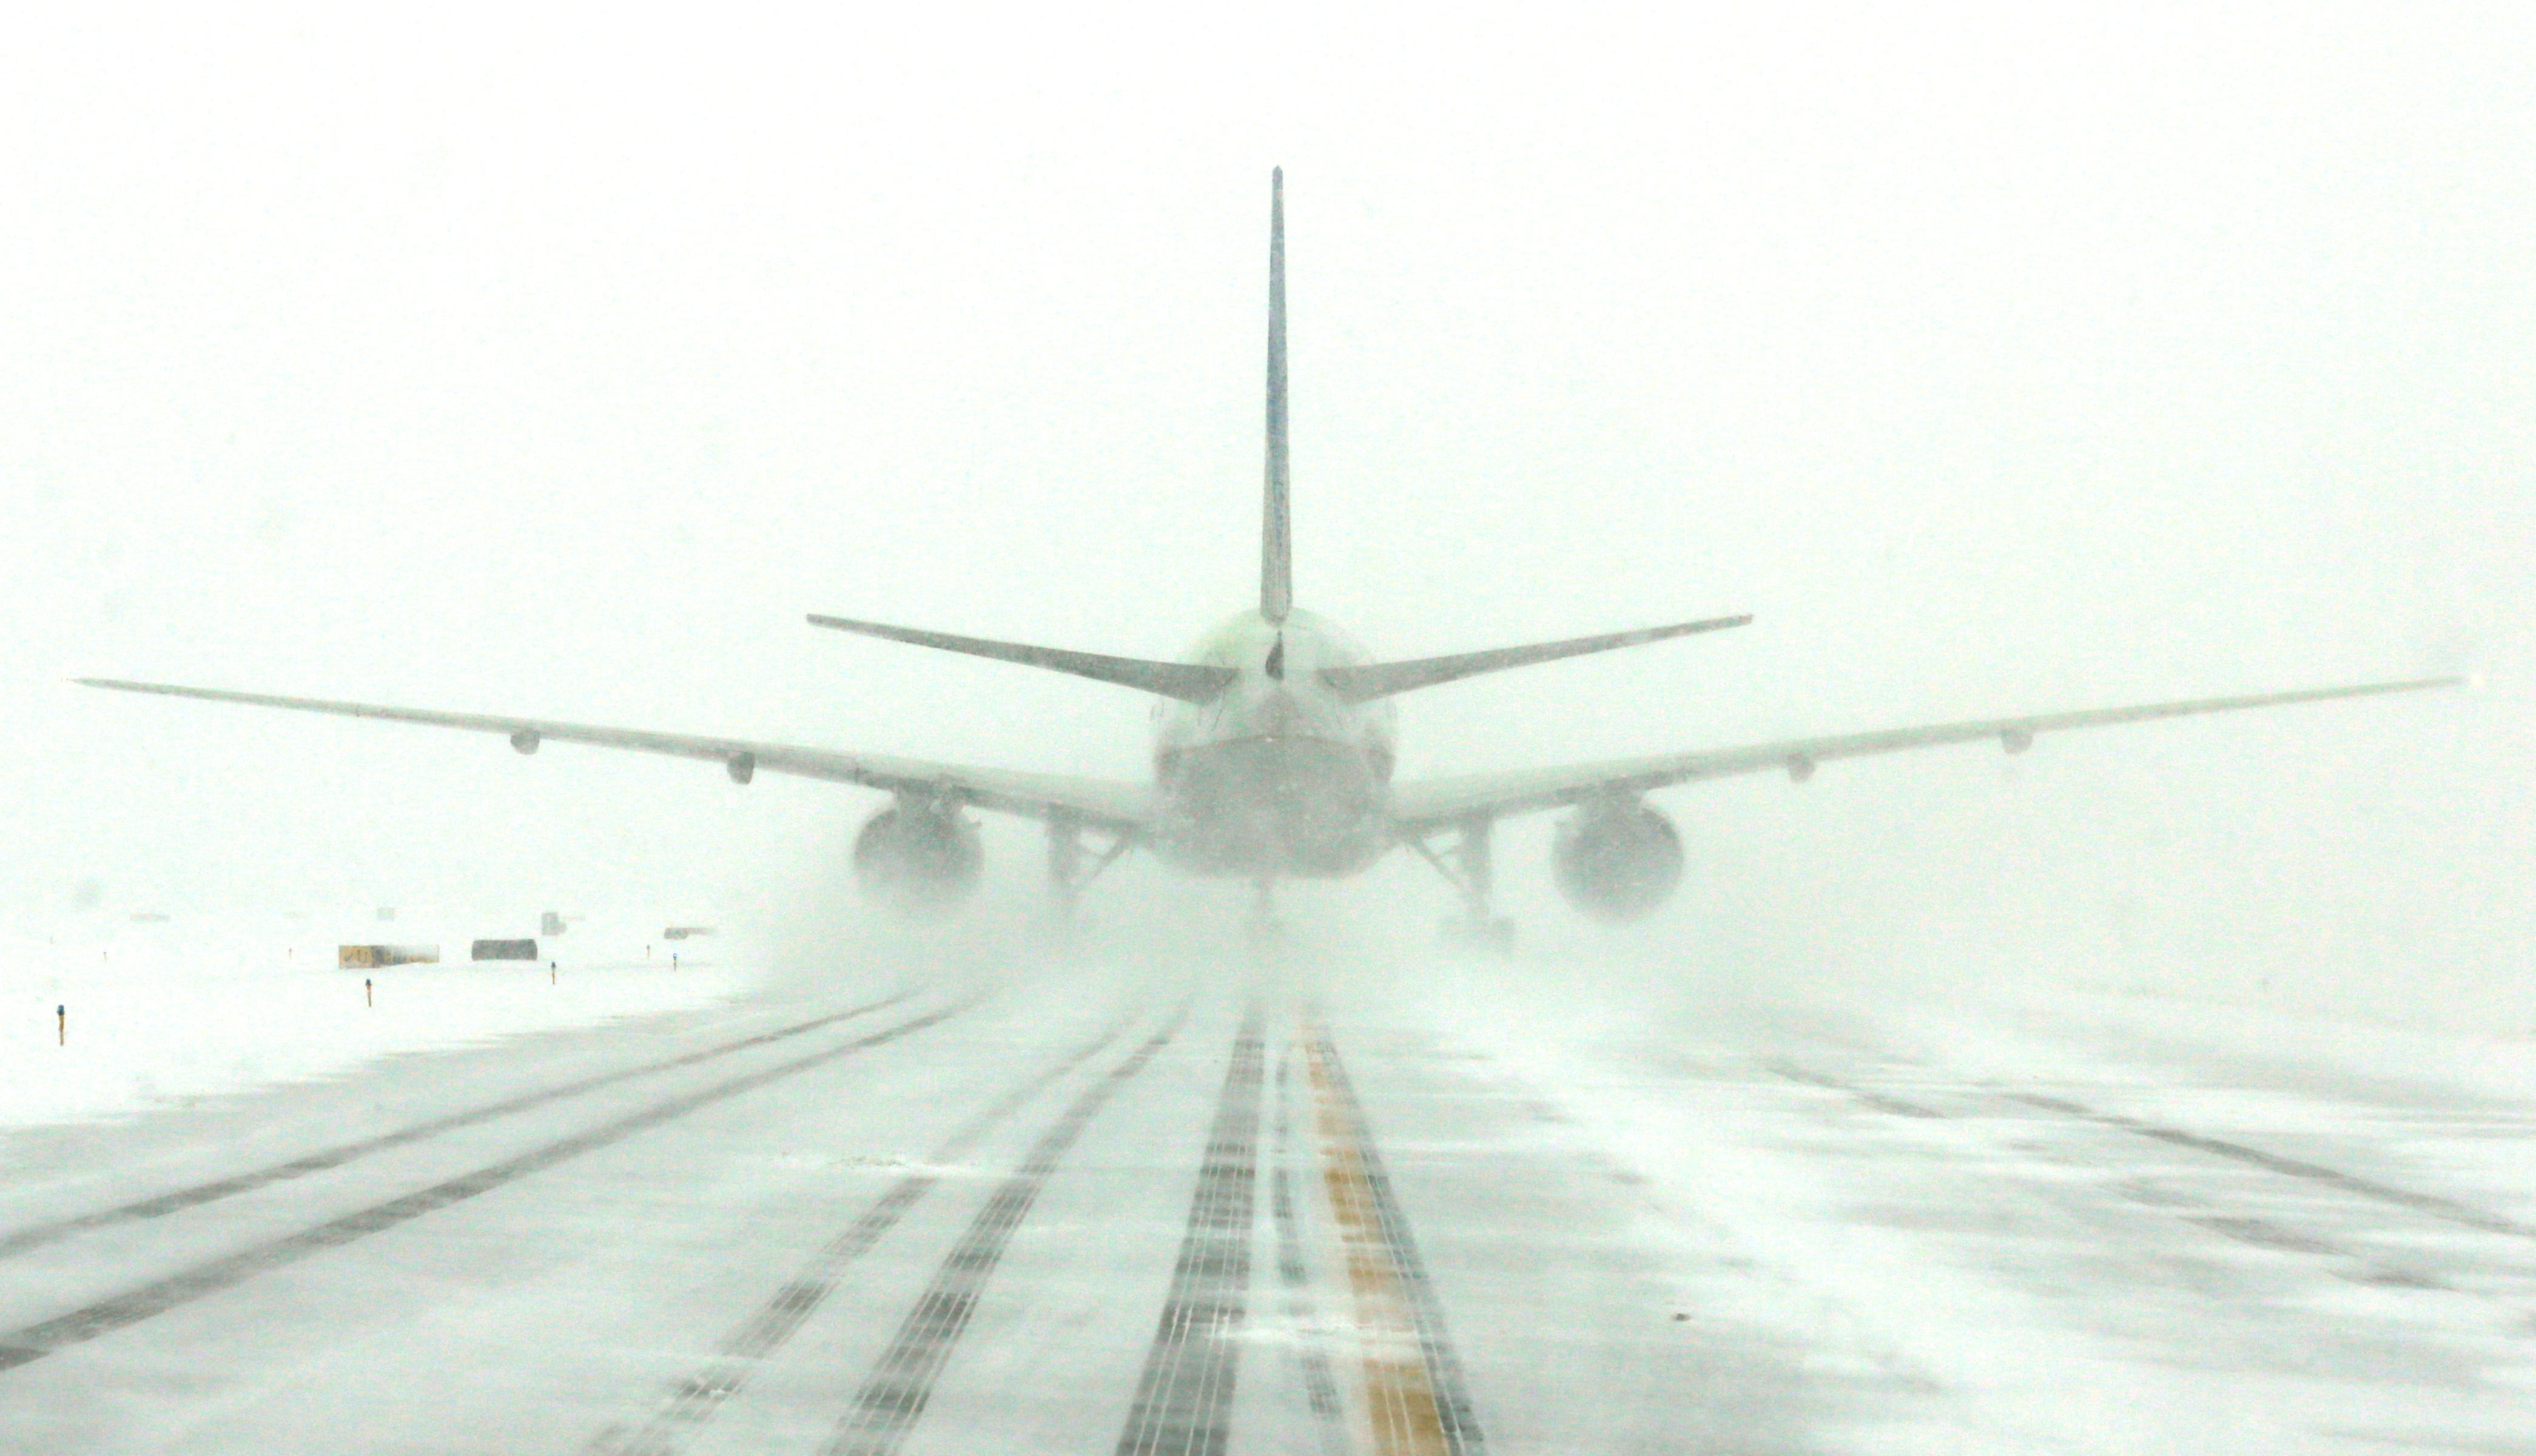 Airlines cancel 500+ flights ahead of winter storm as northeast prepares for heavy snow